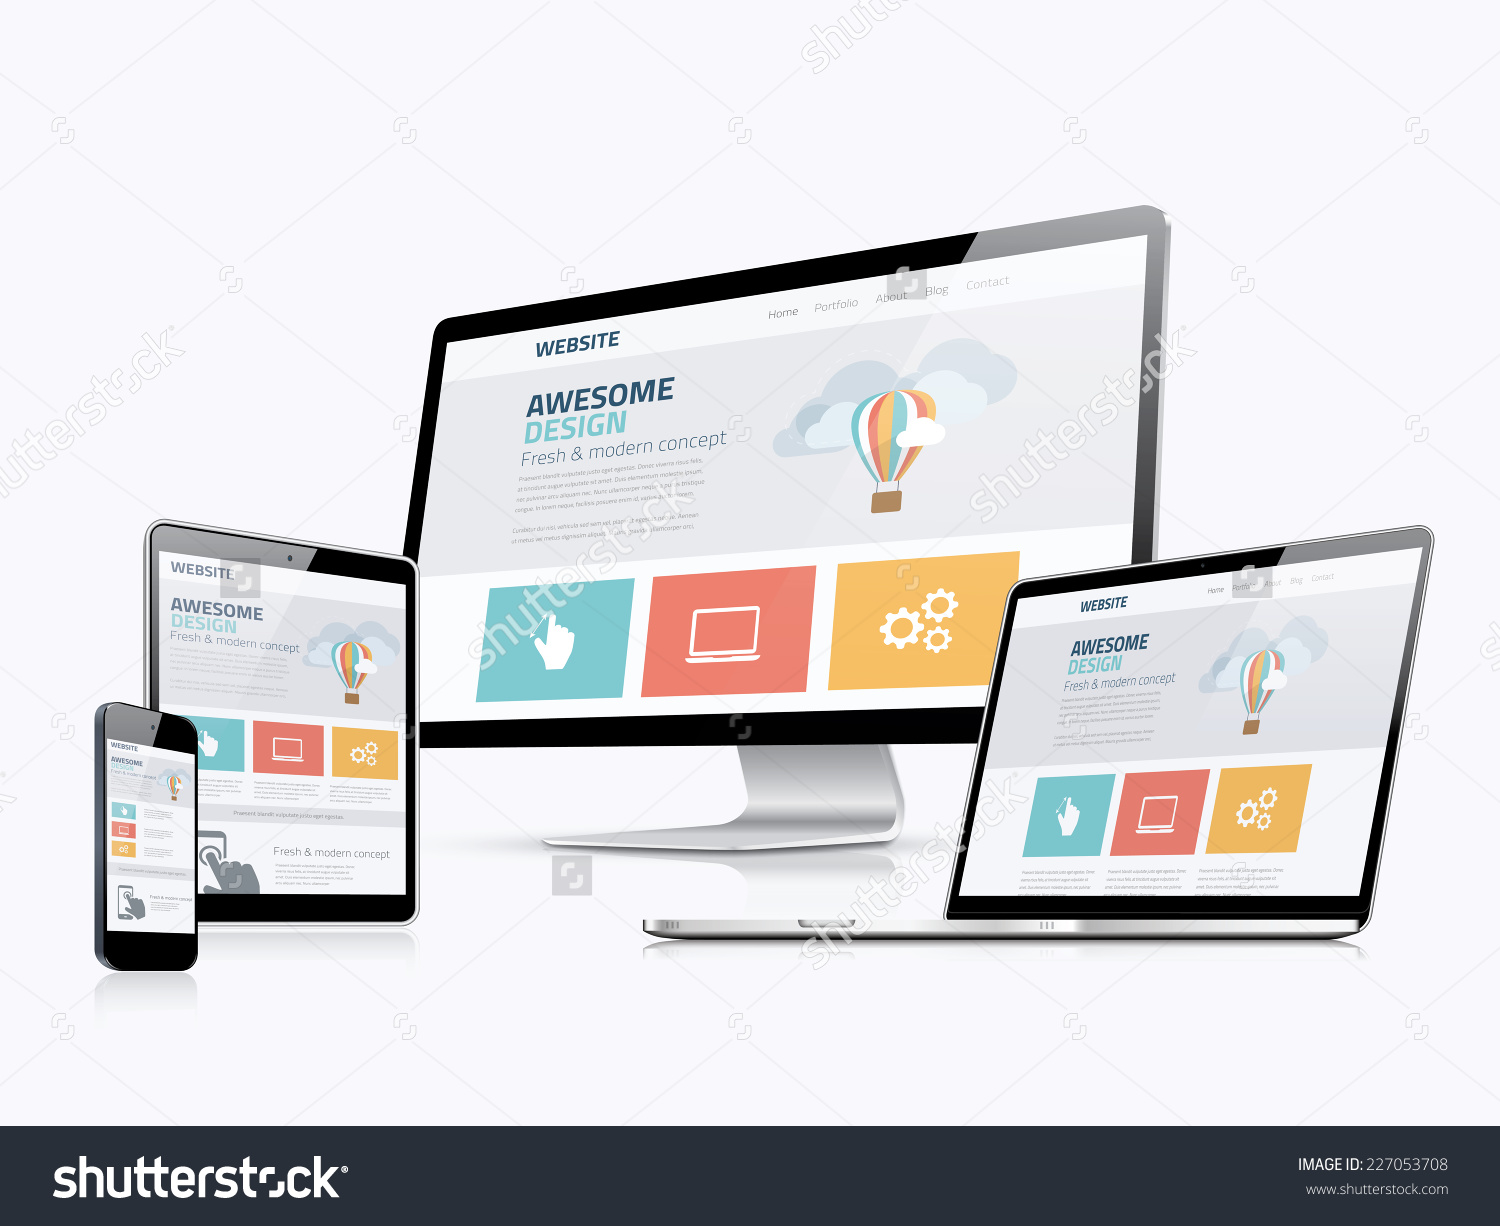 1500x1226 Stock Vector Flat Responsive Web Design Concept Website